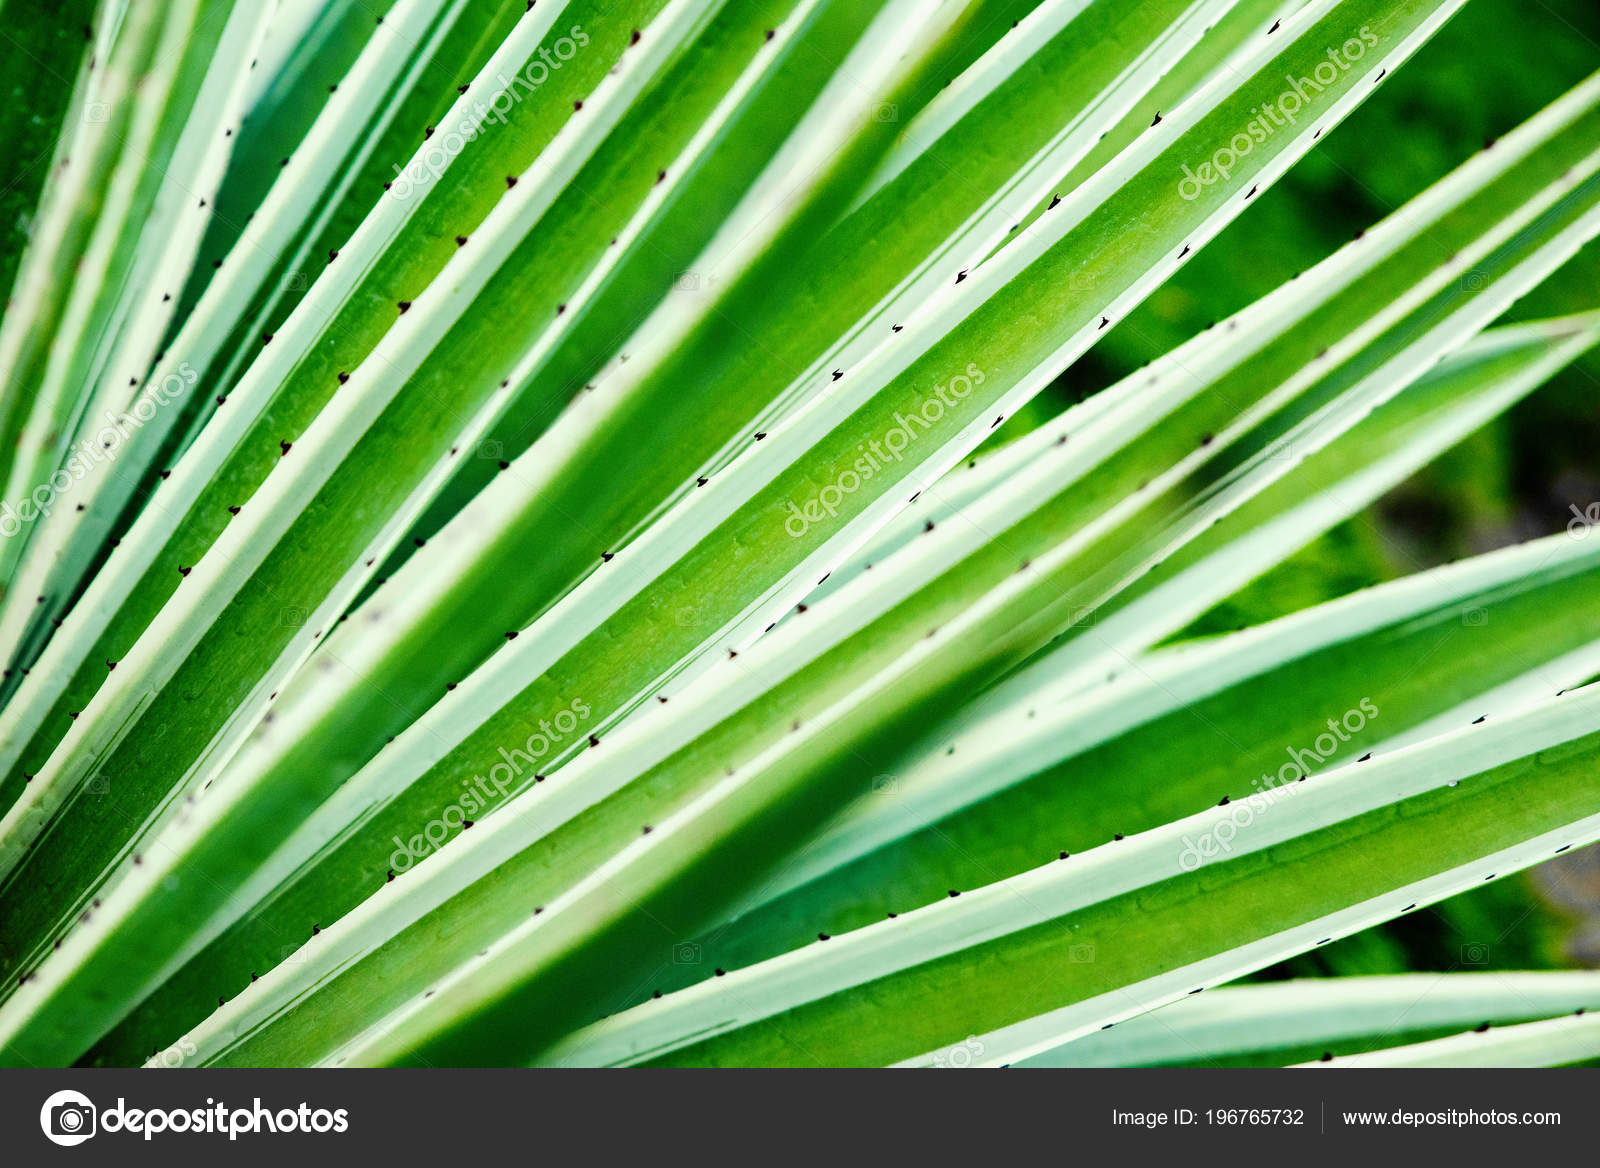 Aloe Vera Kaktus Cactus Aloe Vera Closeup Natural Natural Background The Concept